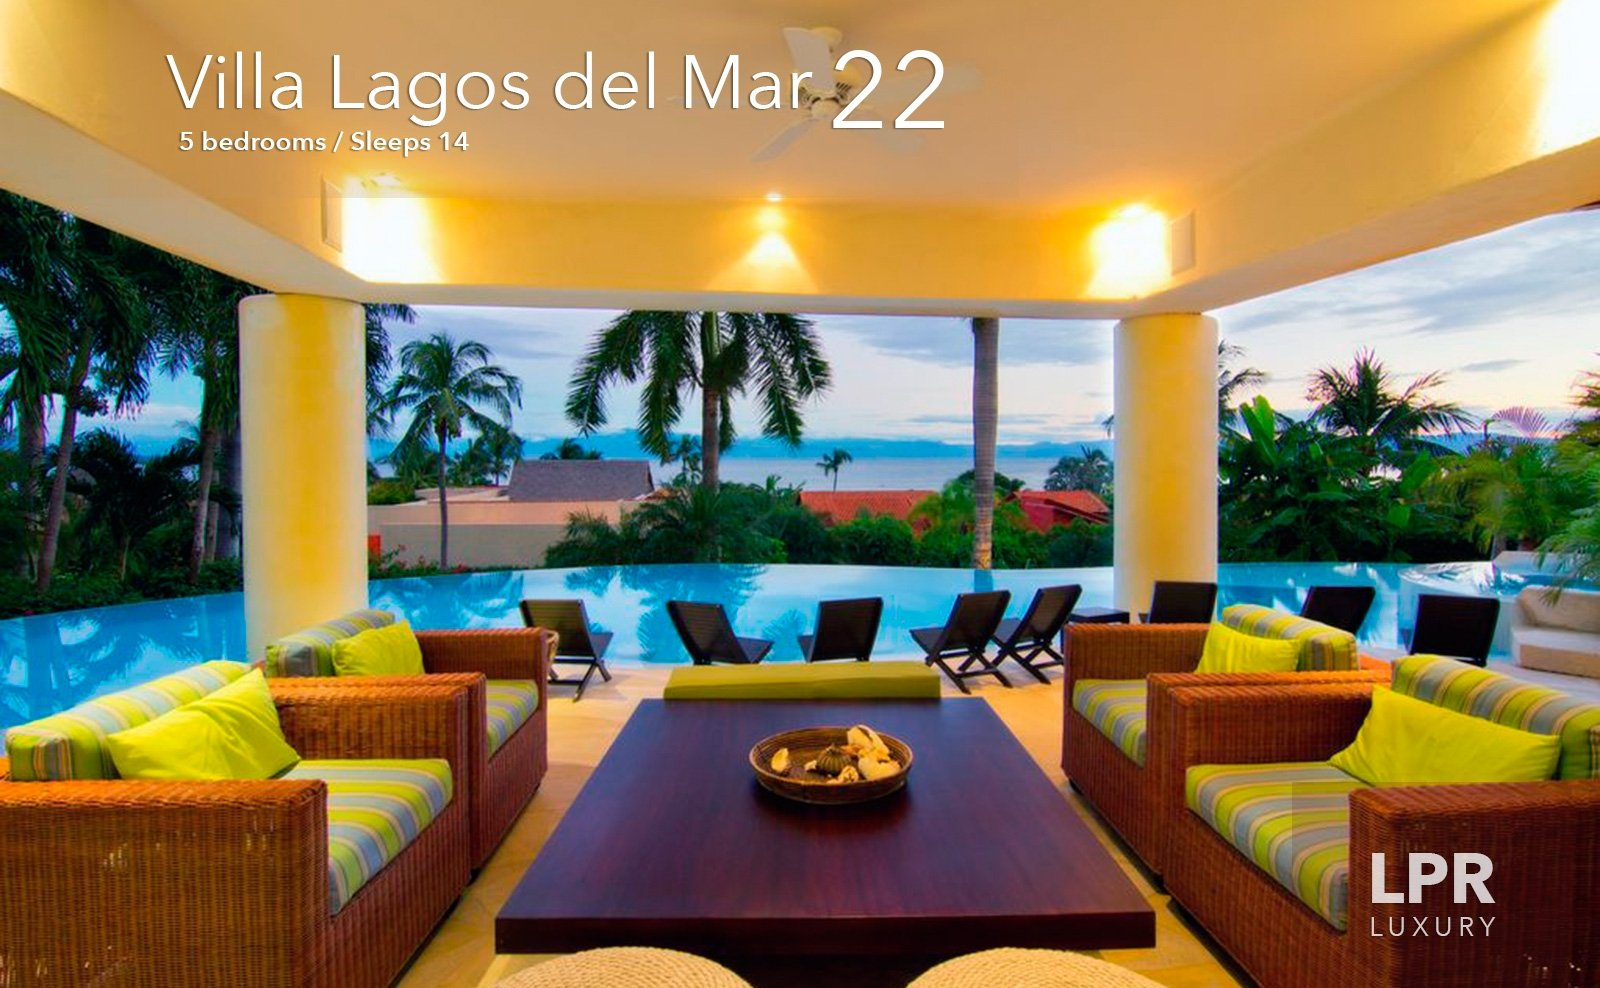 Villa Lagos Del Mar 22 - Luxury real estate and vacation rentals at the Punta Mita Resort, Riviera Nayarit, Mexico